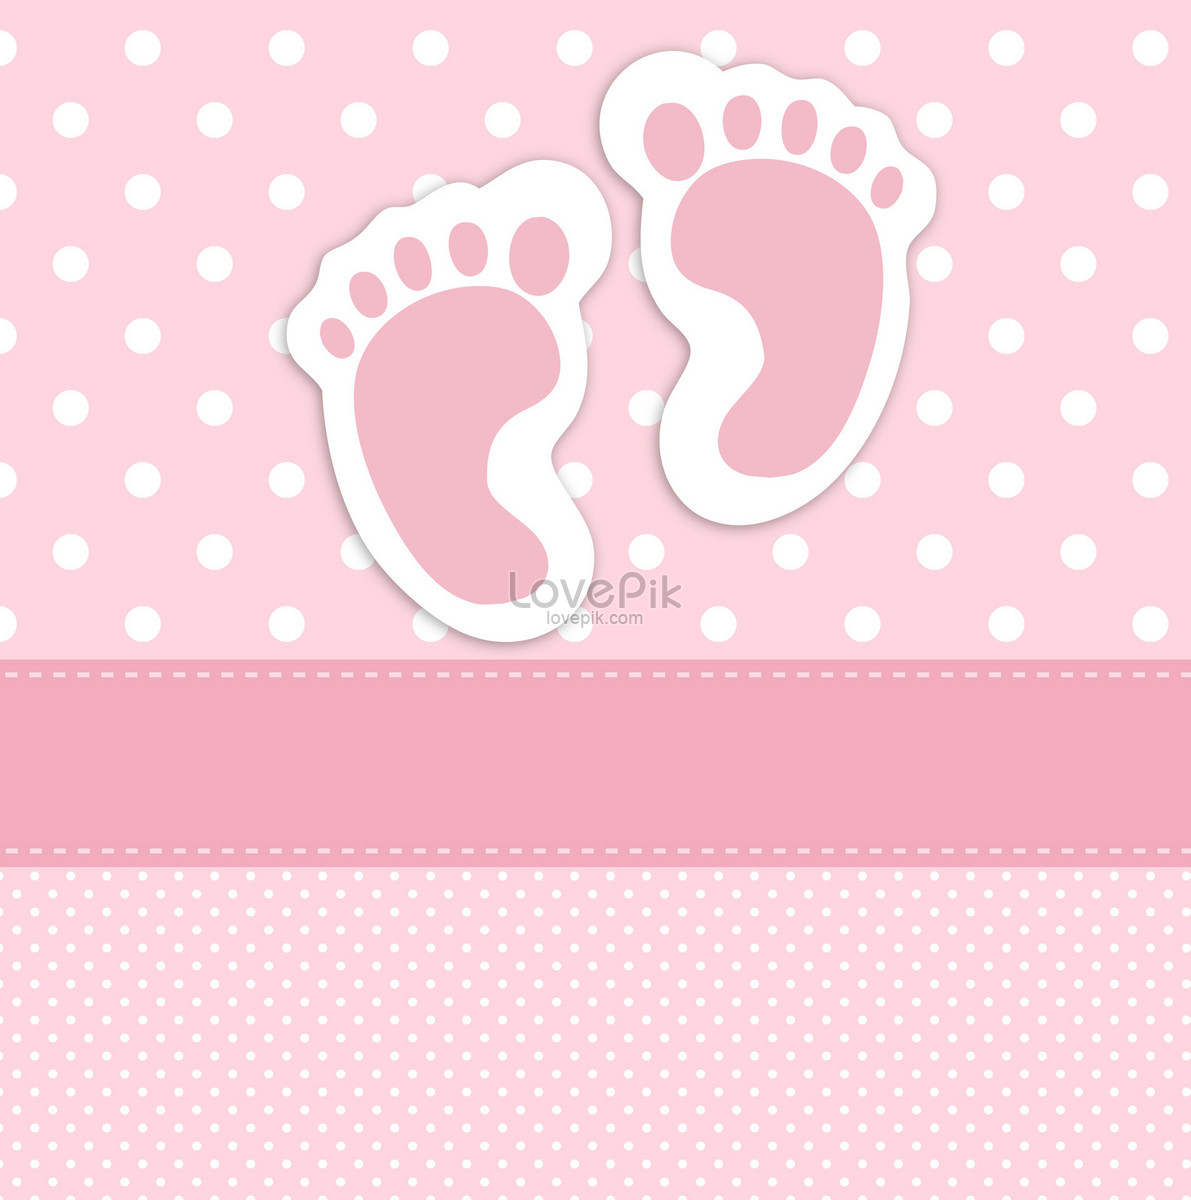 baby foot print business card template photo image picture free